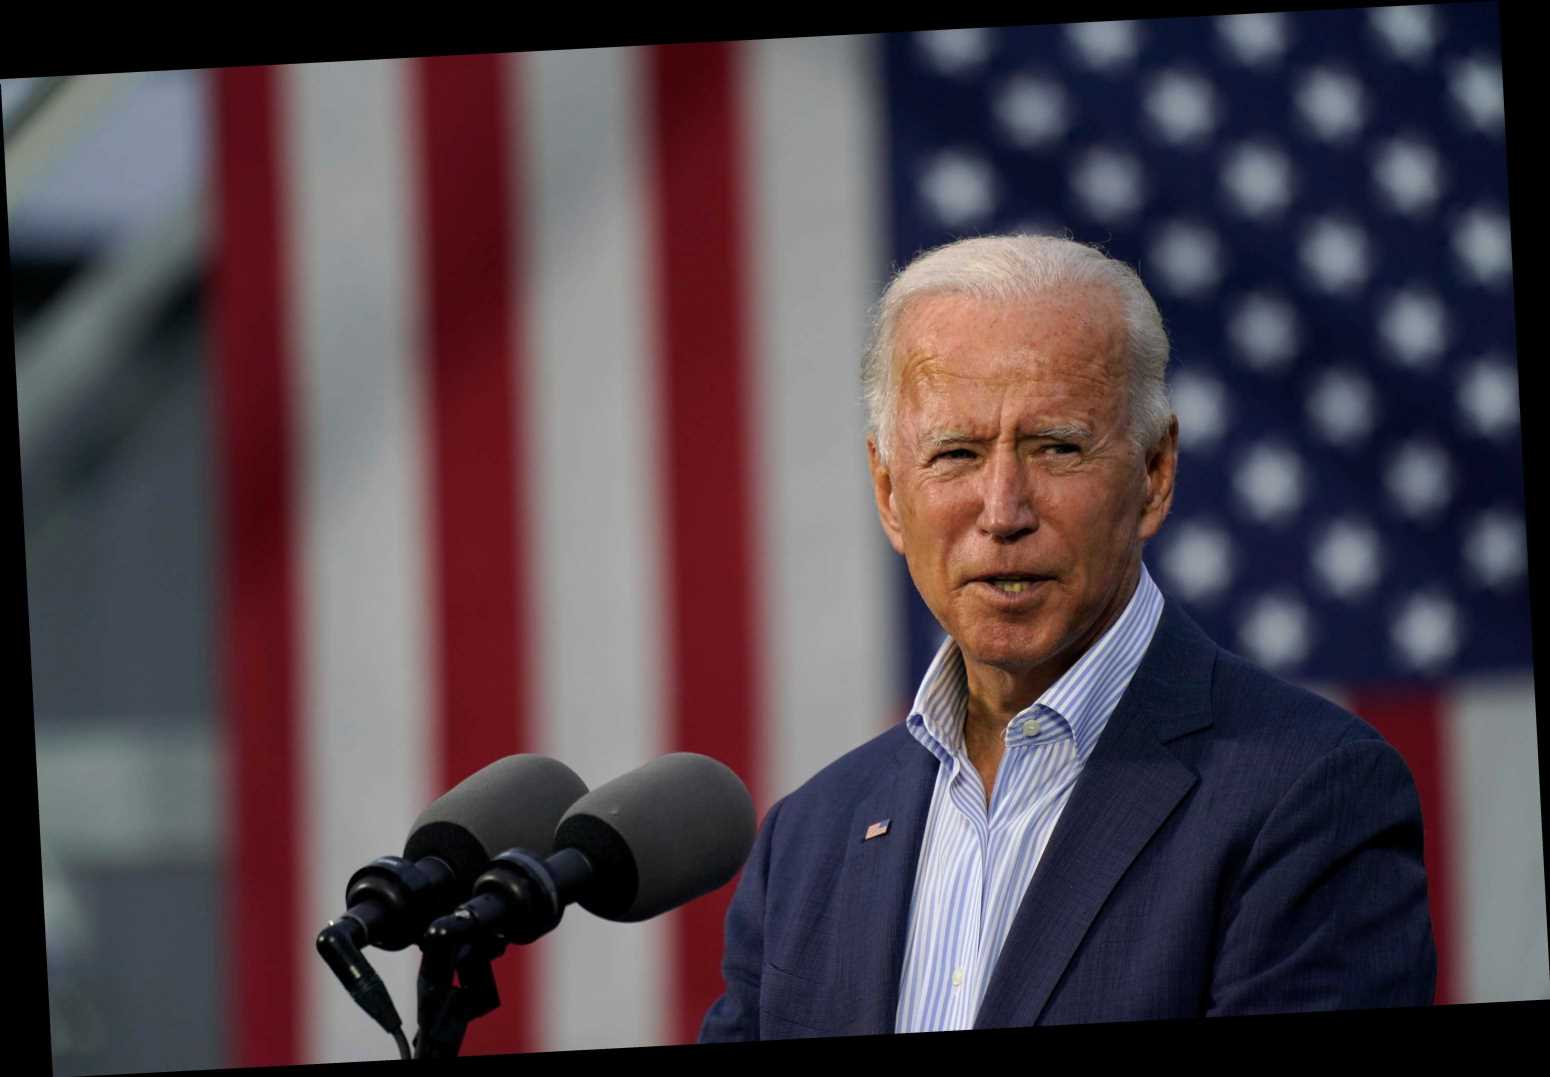 Biden hints he WON'T accept election defeat saying 'only way' he can lose is through vote tampering